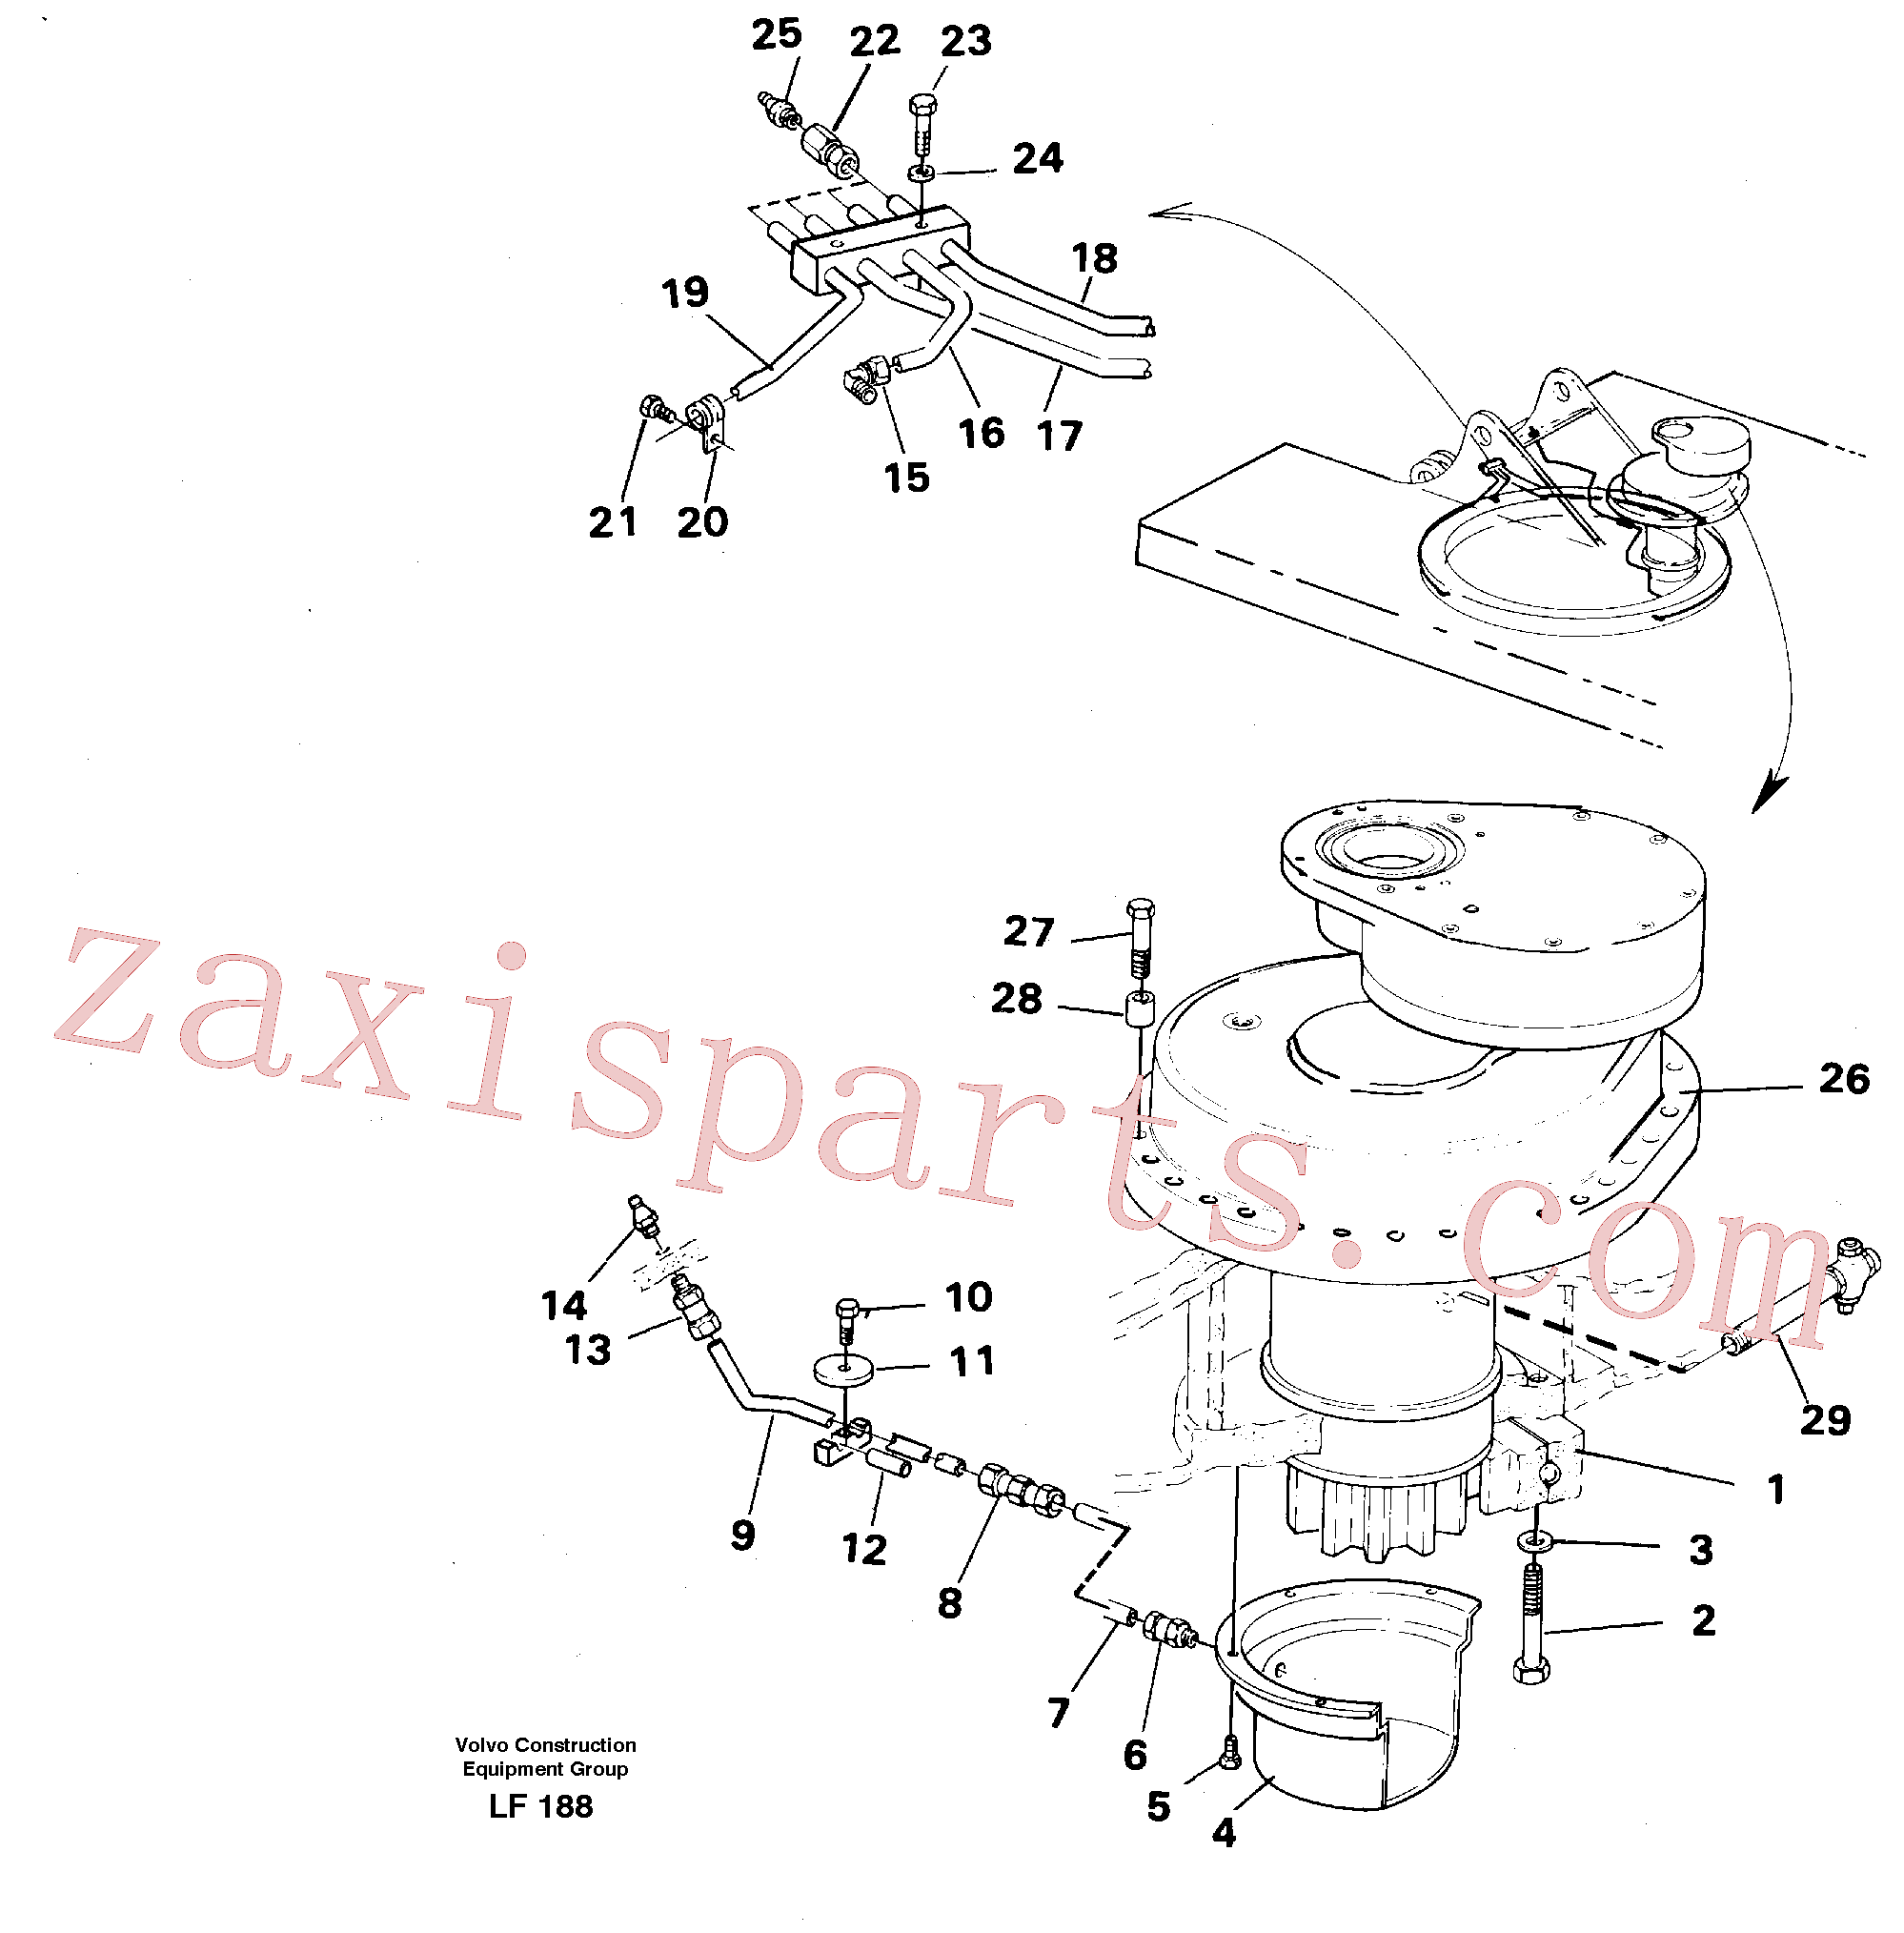 VOE14259689 for Volvo Superstructure with slew transmission(LF188 assembly)